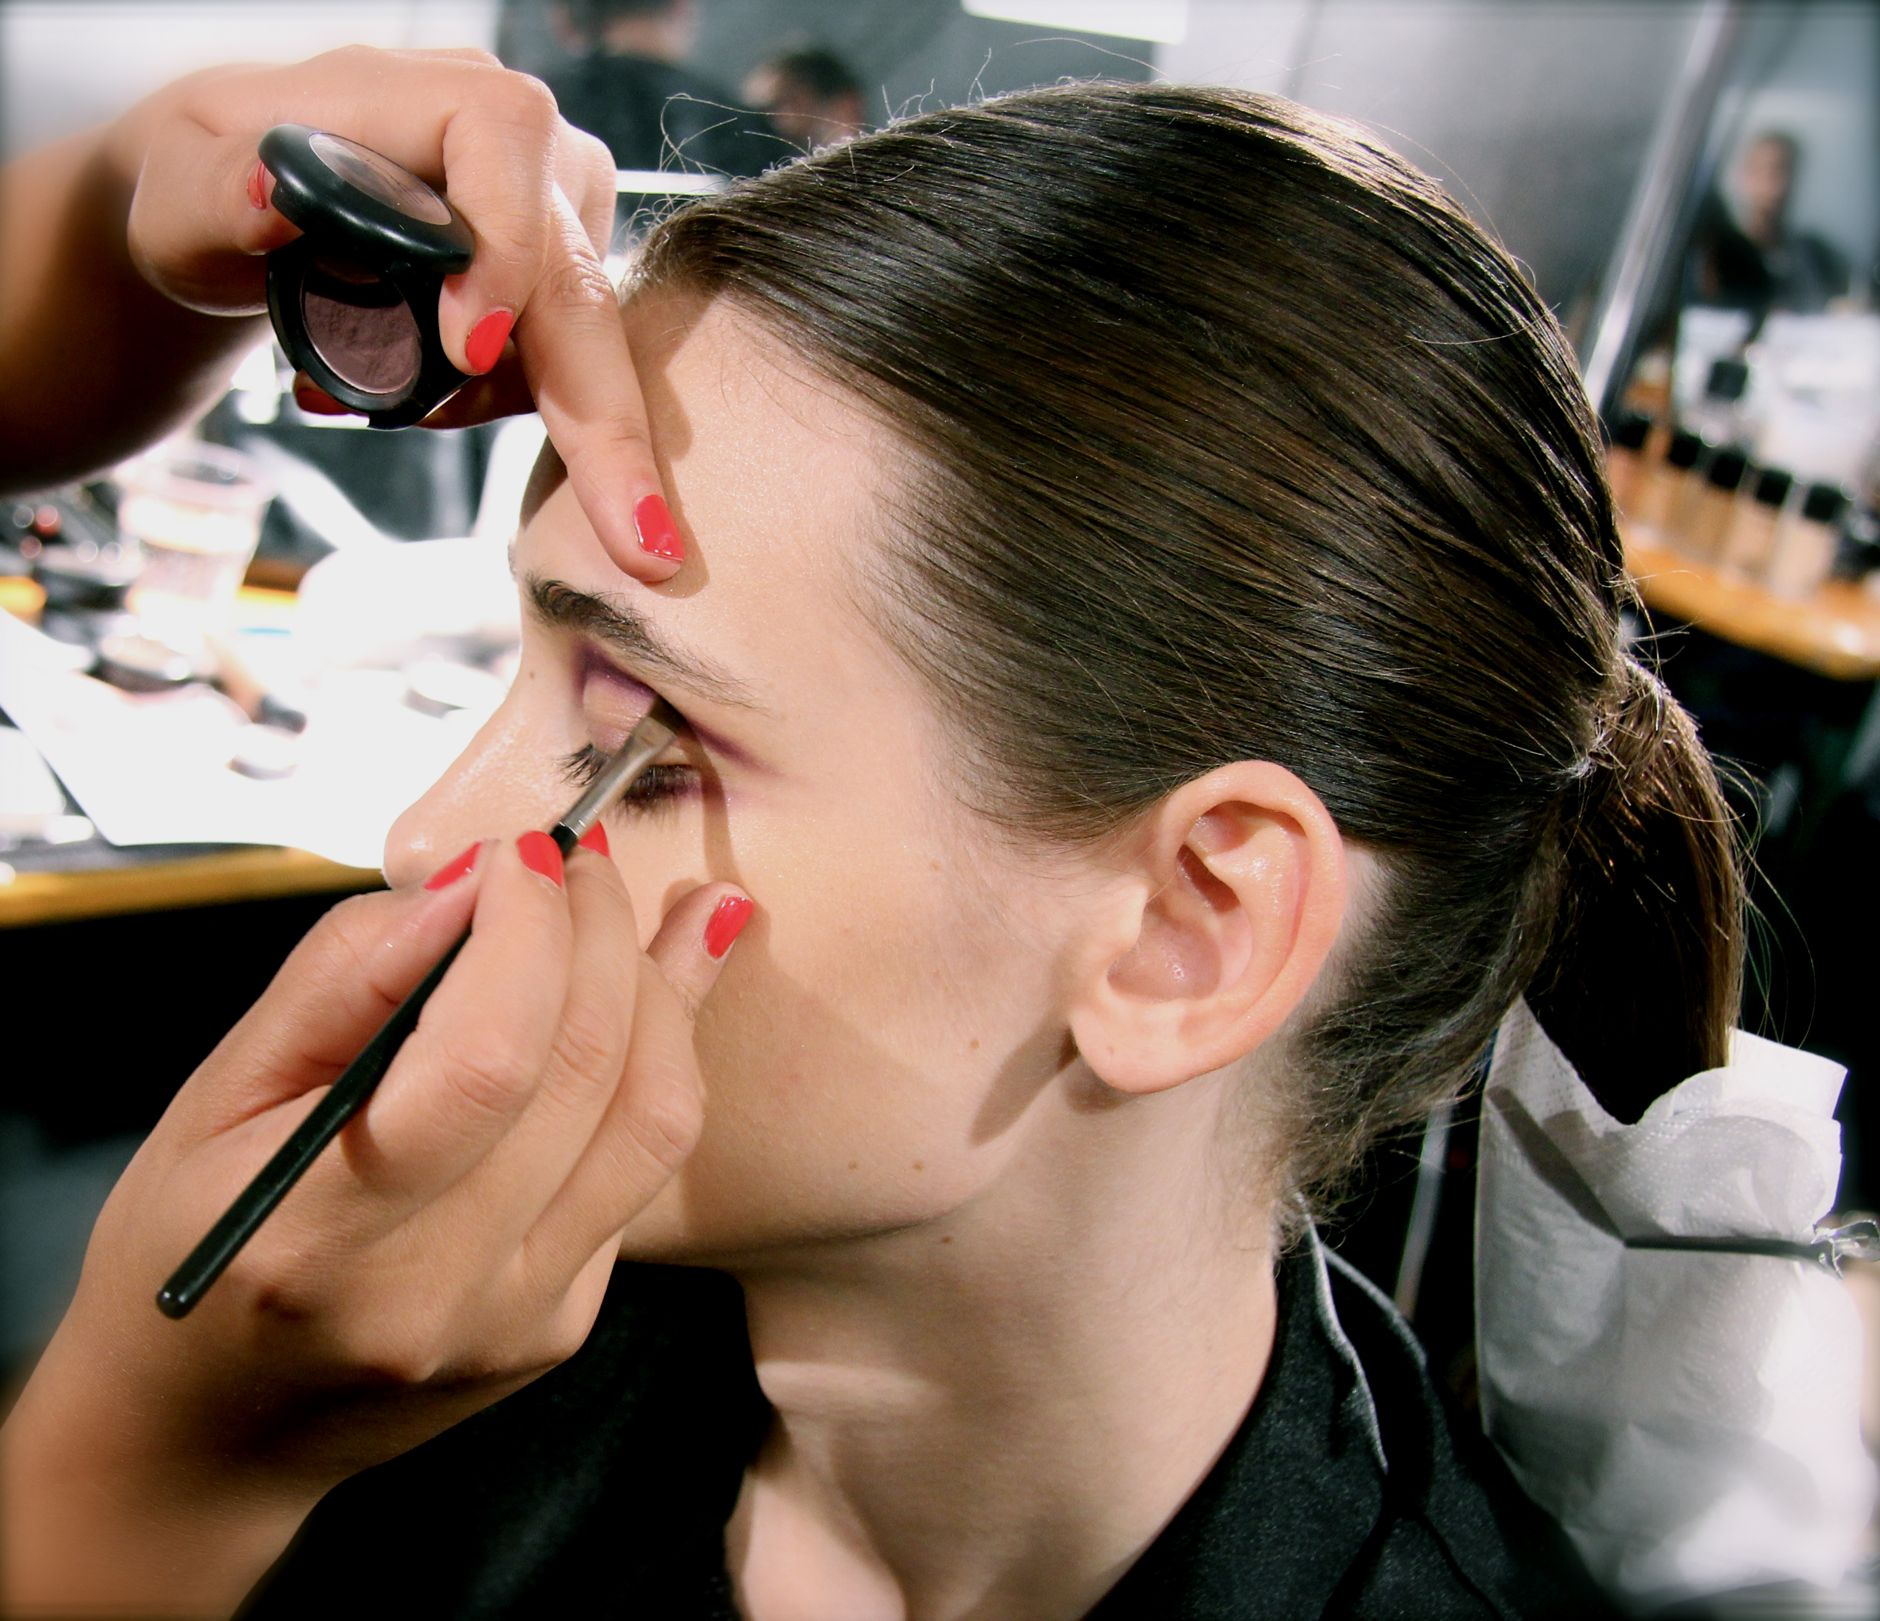 NYFW 2016: The Top 5 Beauty Looks Straight from the Runway